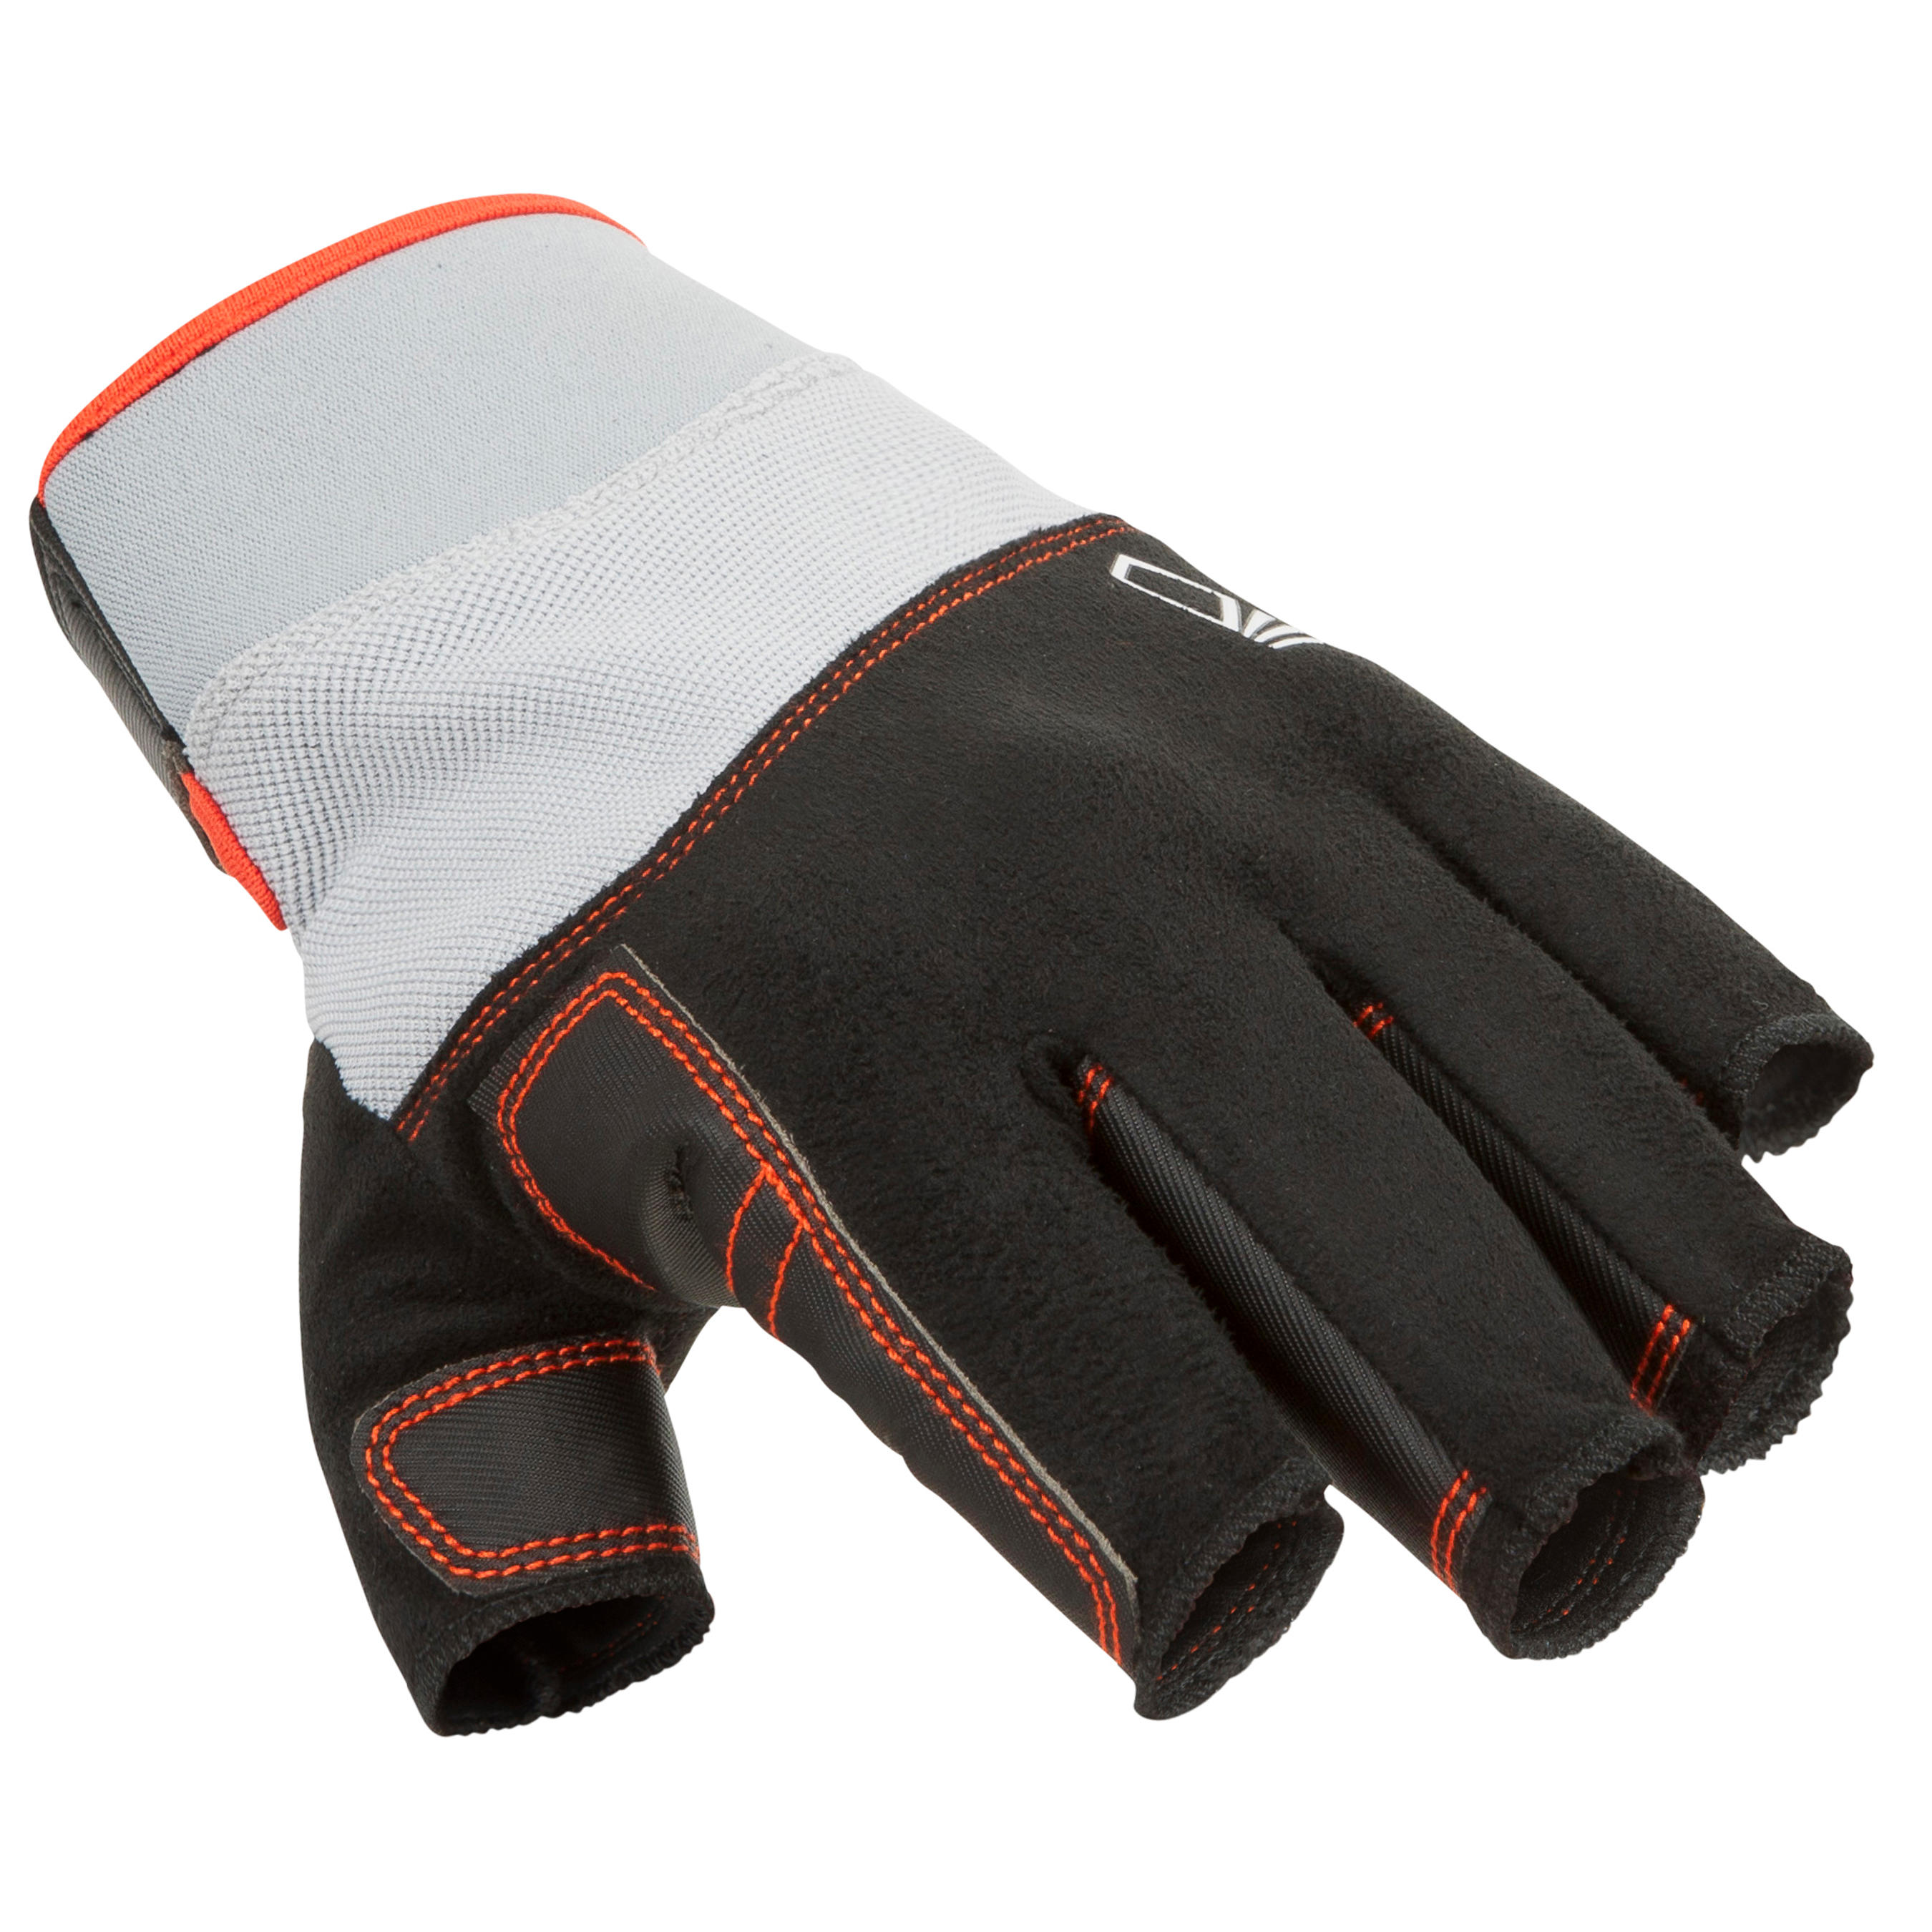 500 Adult Sailing Fingerless Gloves - Black/Grey